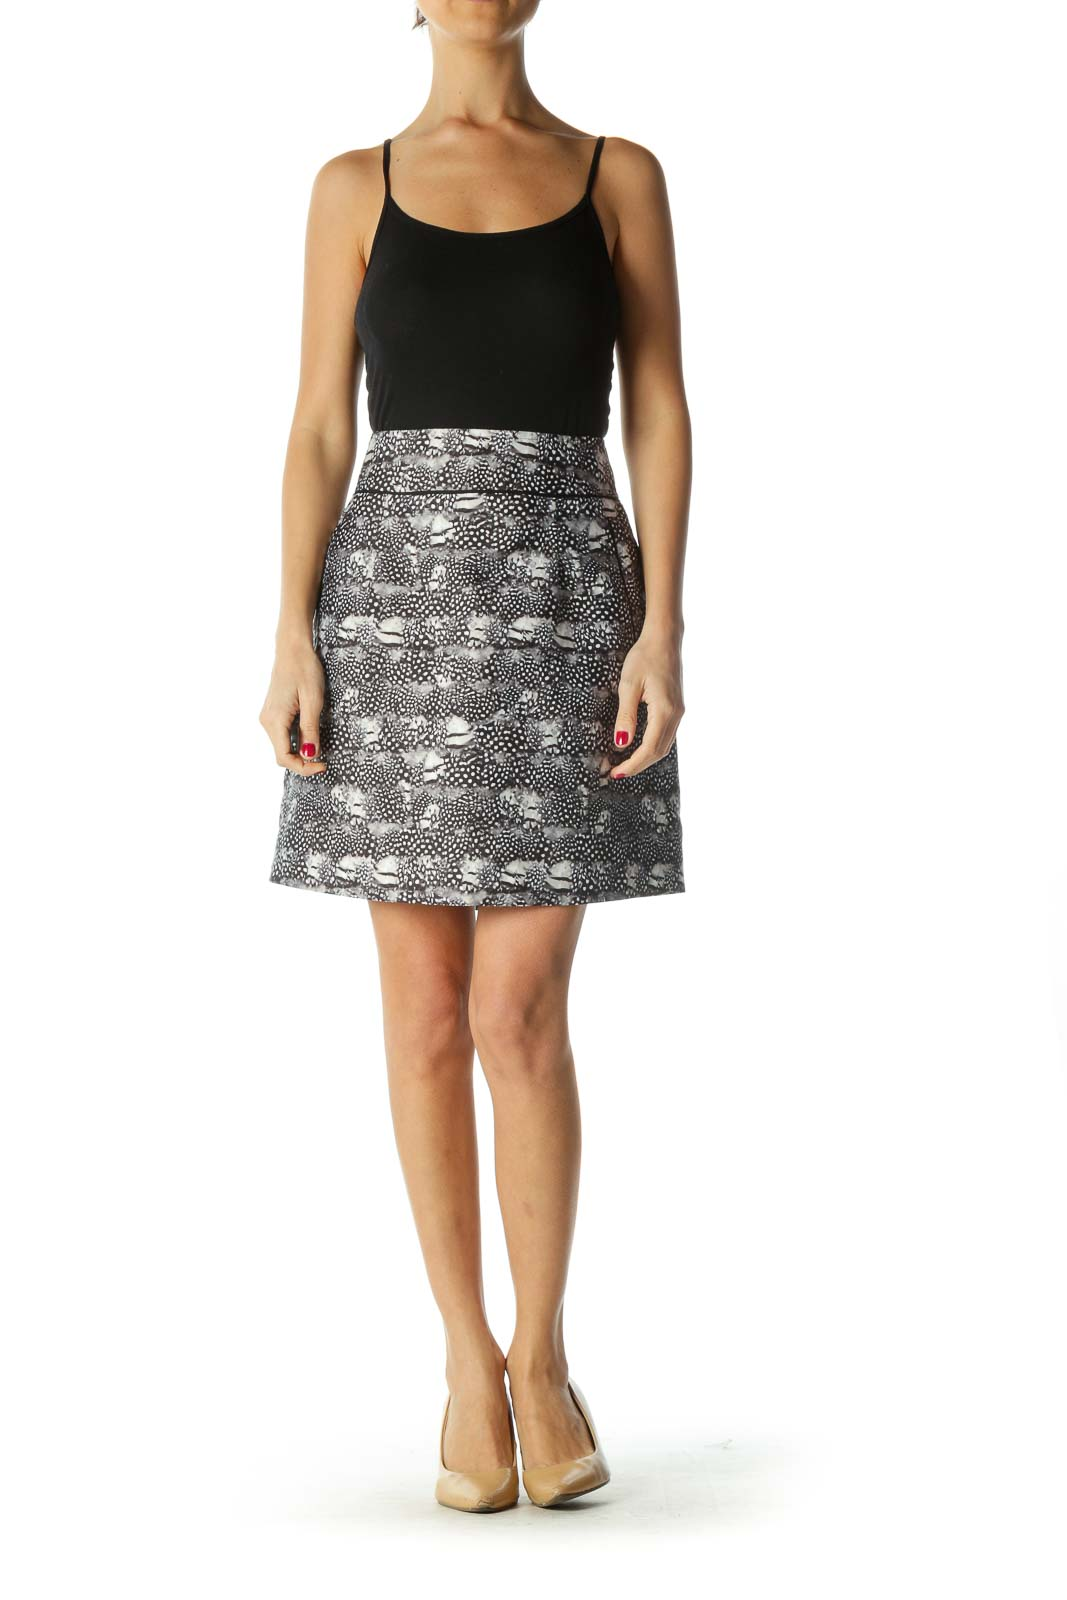 Black & White Feather Print Skirt